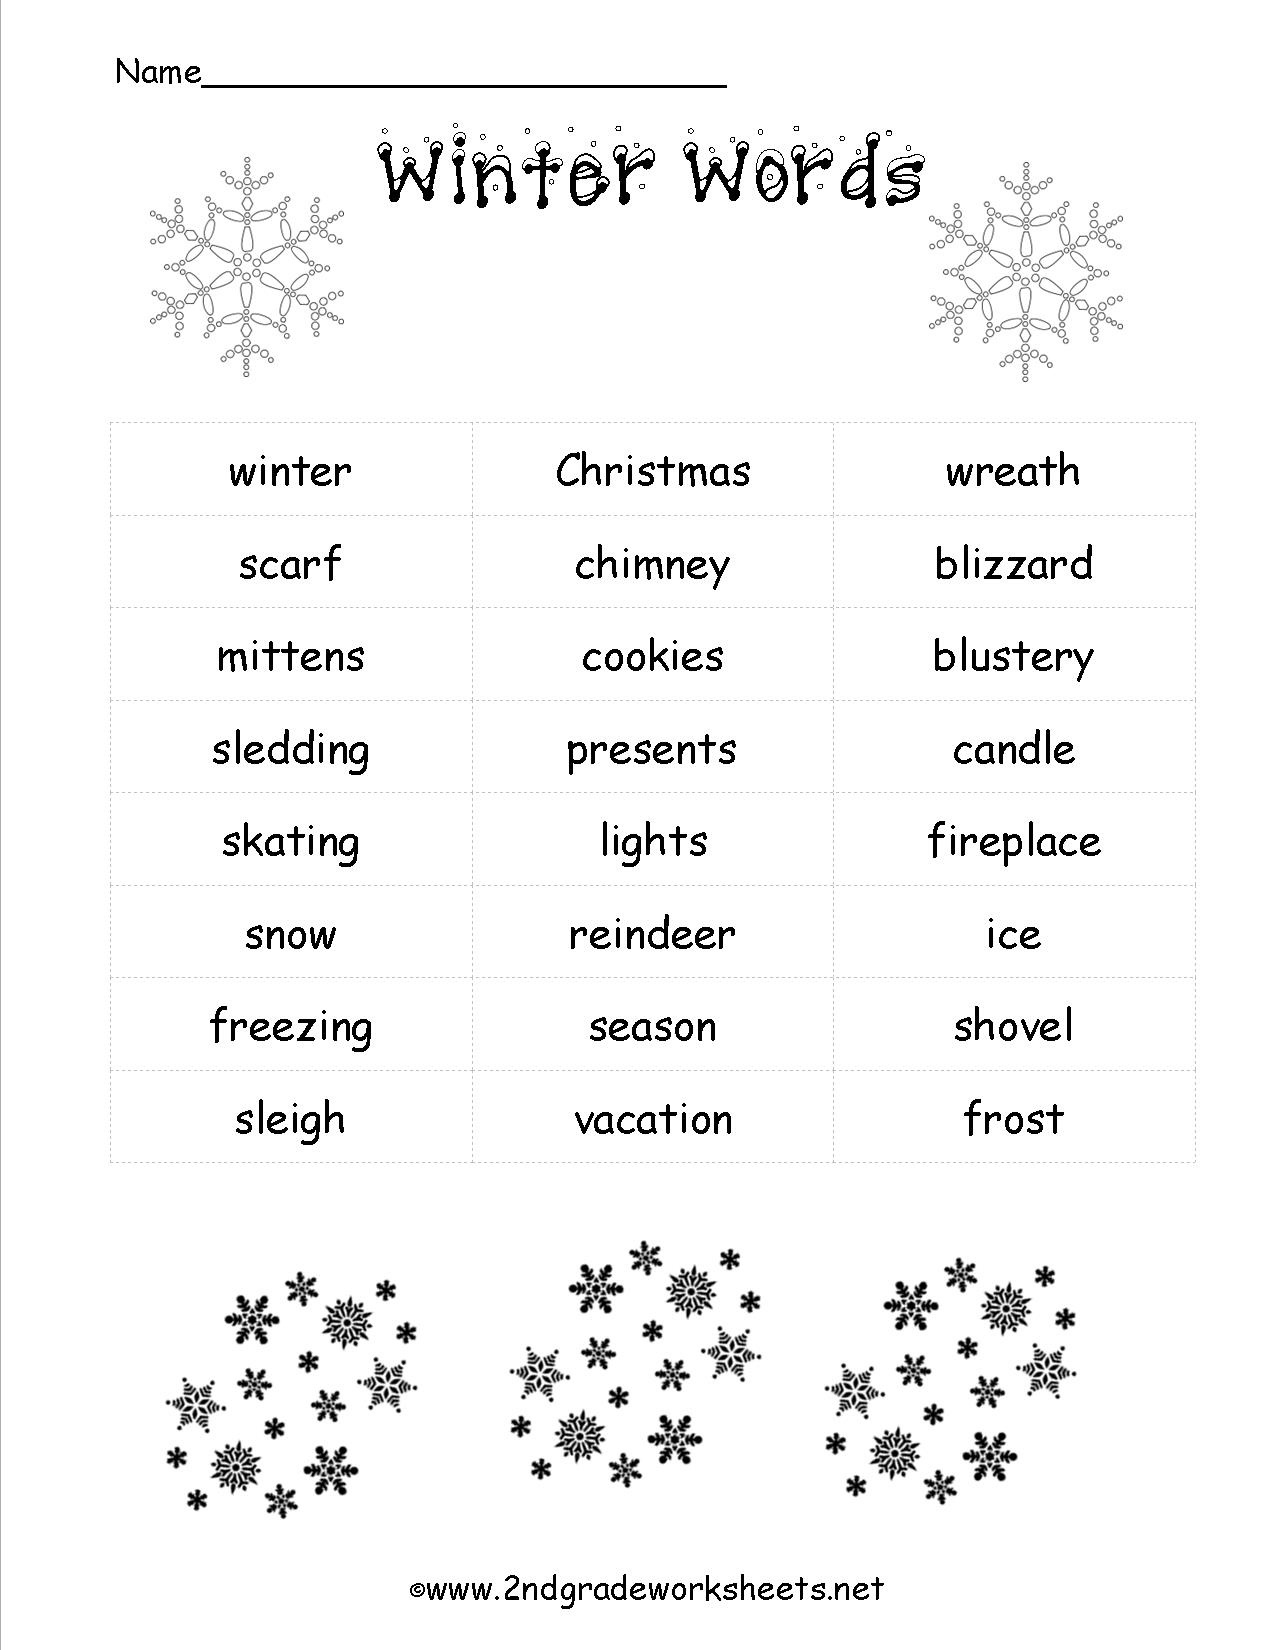 Christmas Worksheets And Printouts - Free Printable Christmas Worksheets For Kids